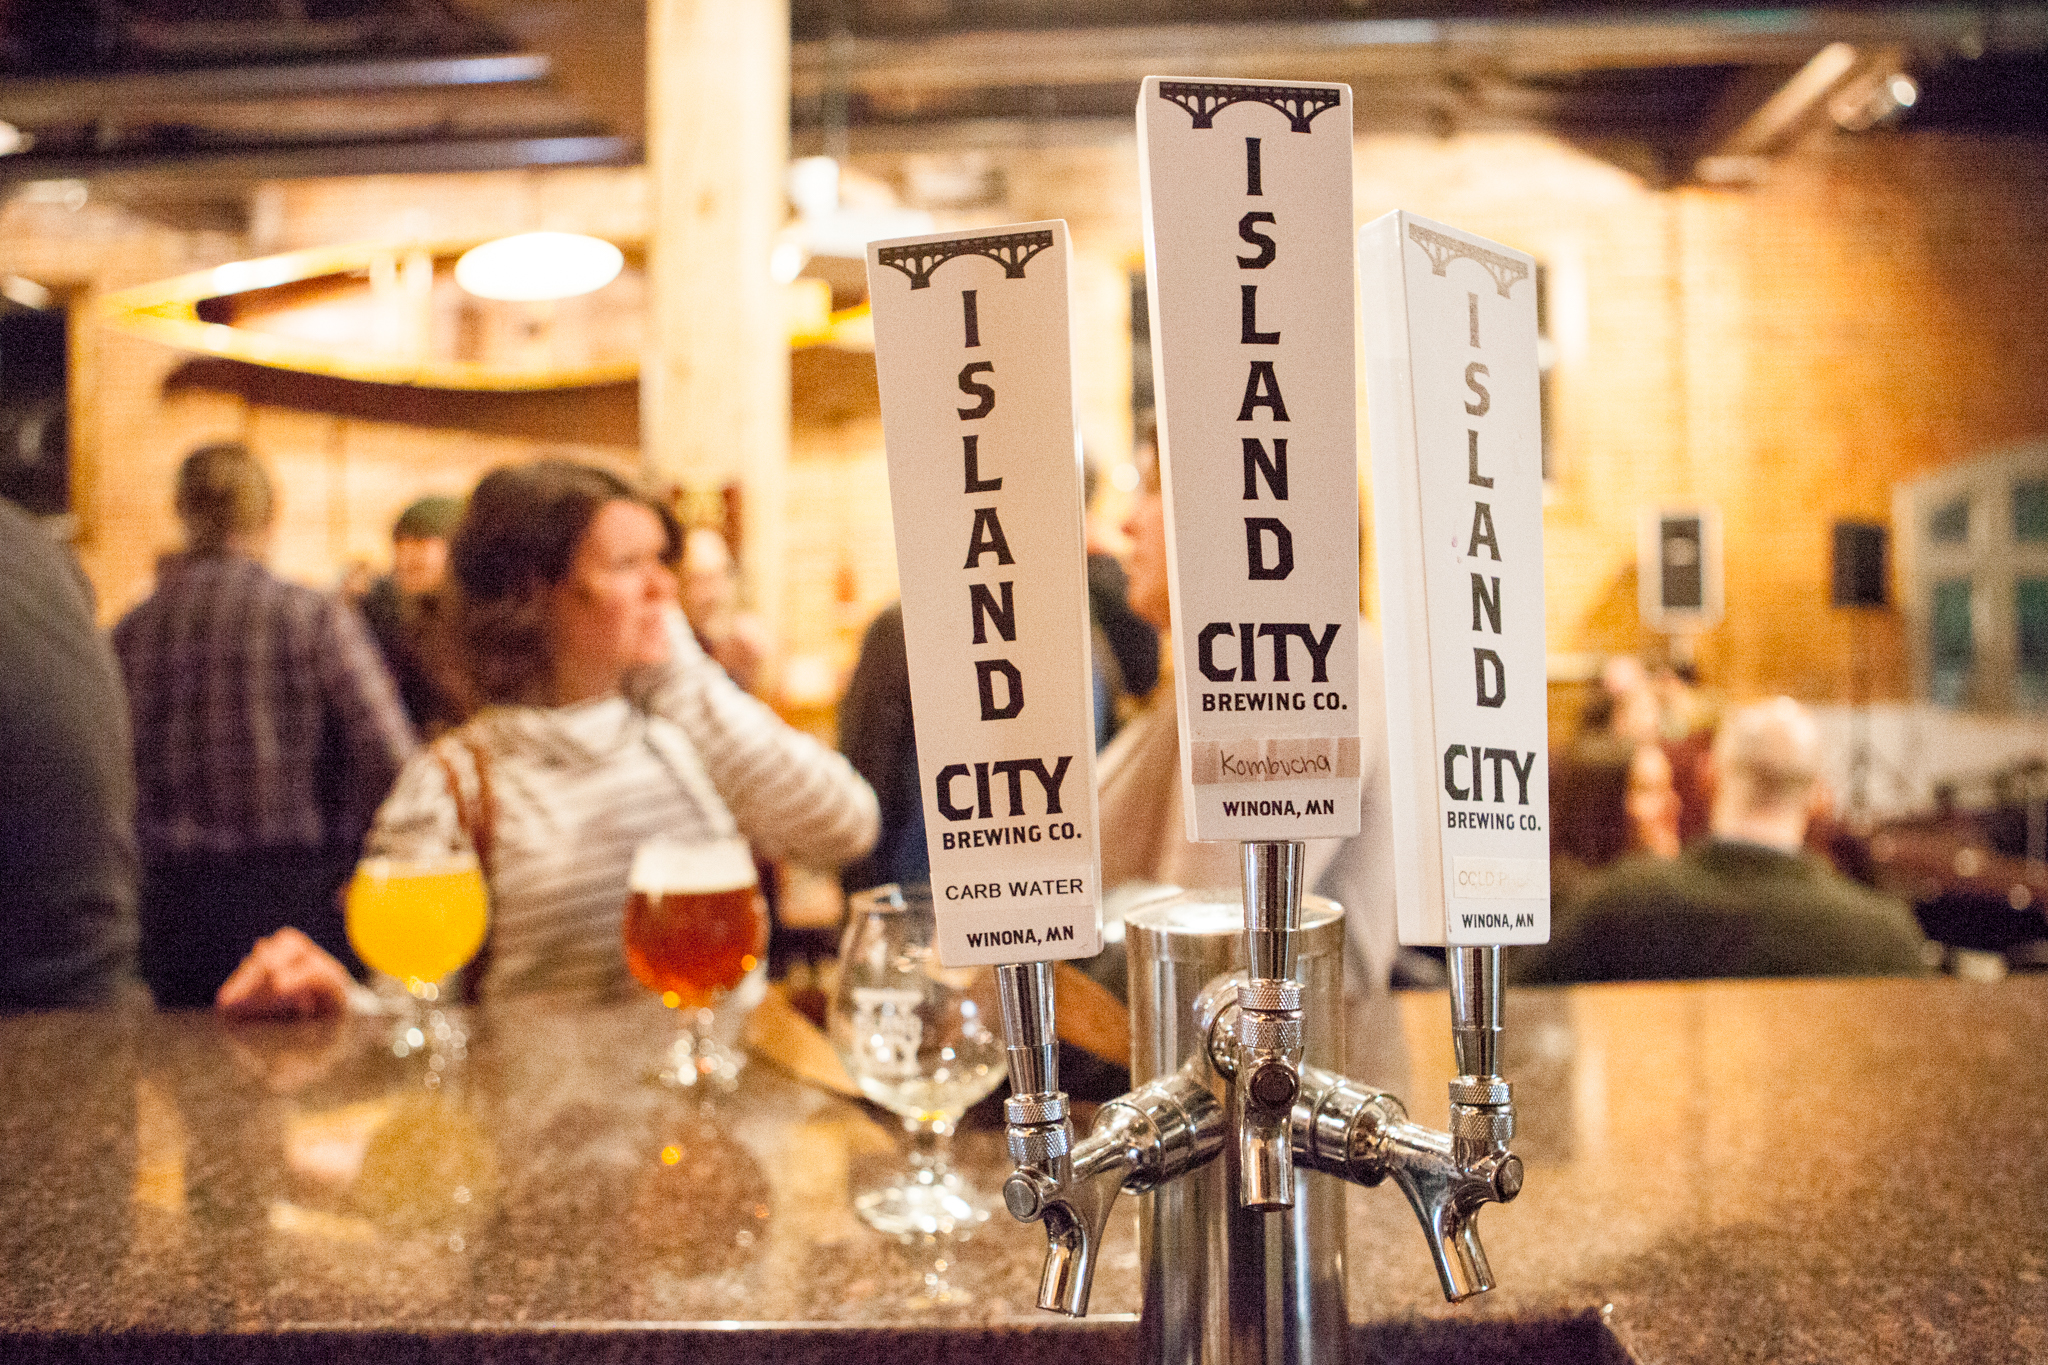 Beer taps at Island City Brewing Company pour unique microbrews